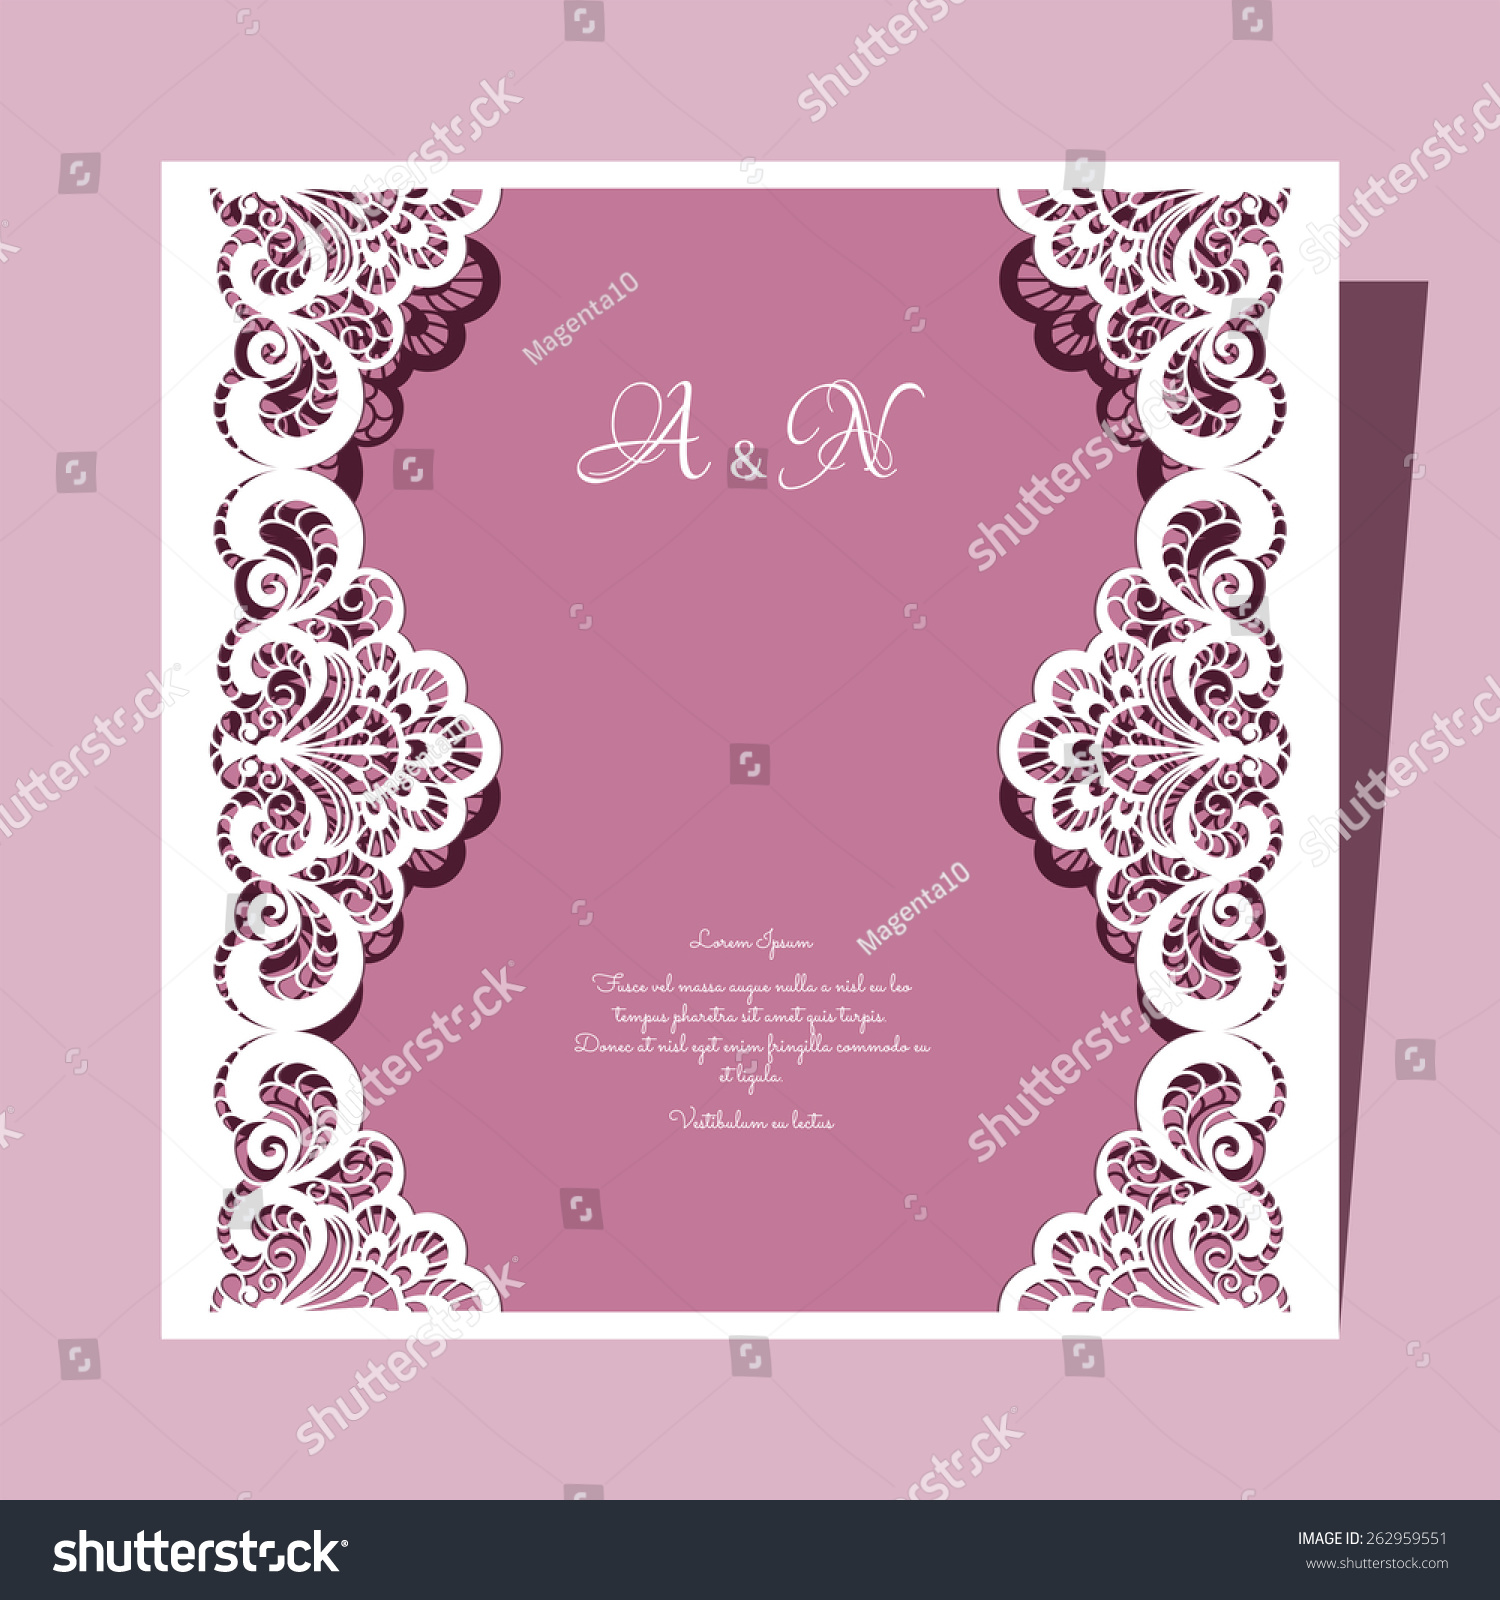 free vector wedding invitation lace template